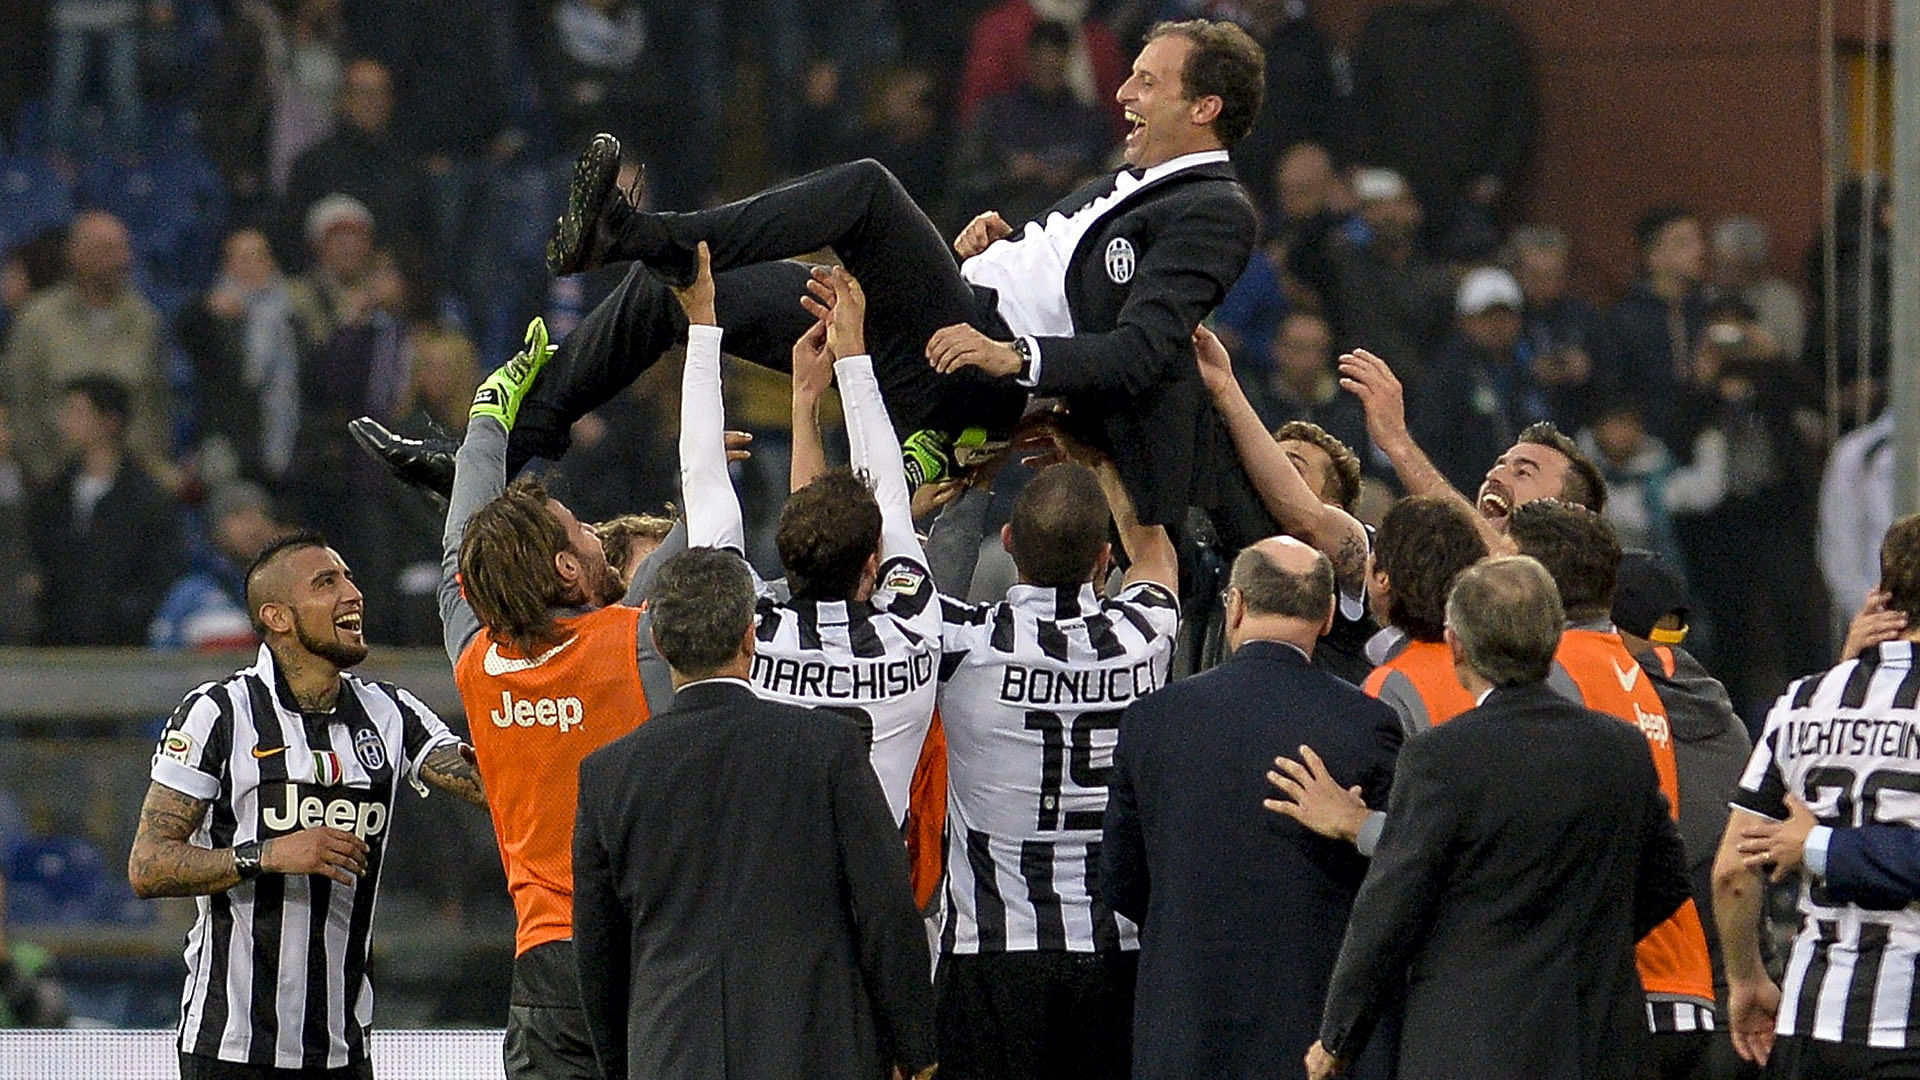 How Juventus leveled up from Serie A champions to European contenders under Massimiliano Allegri